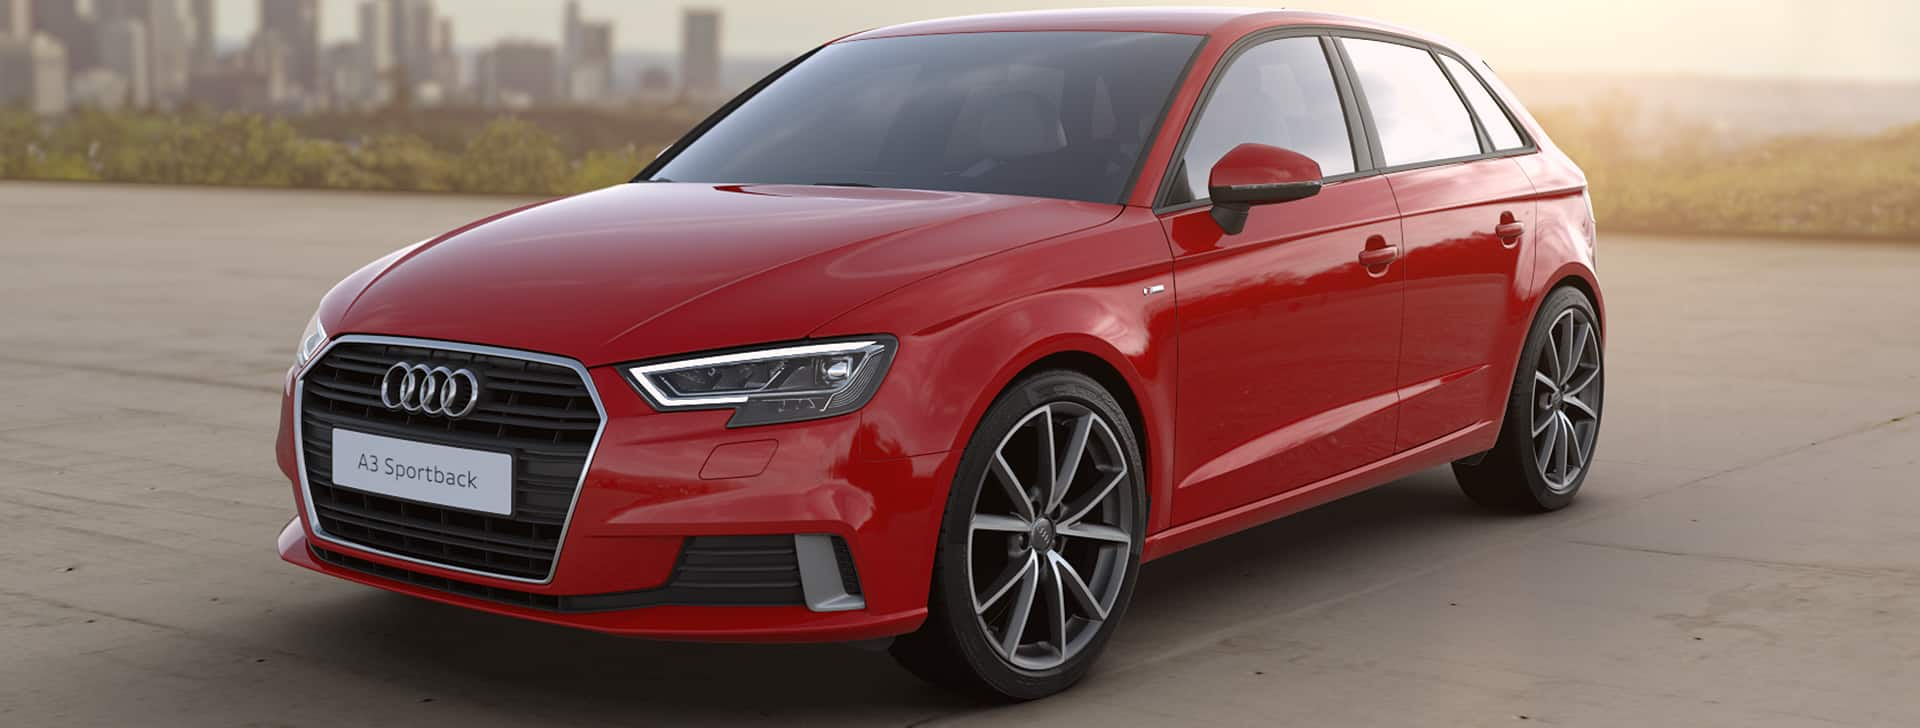 motorauthority videos audi breaking priced photos from news h rs